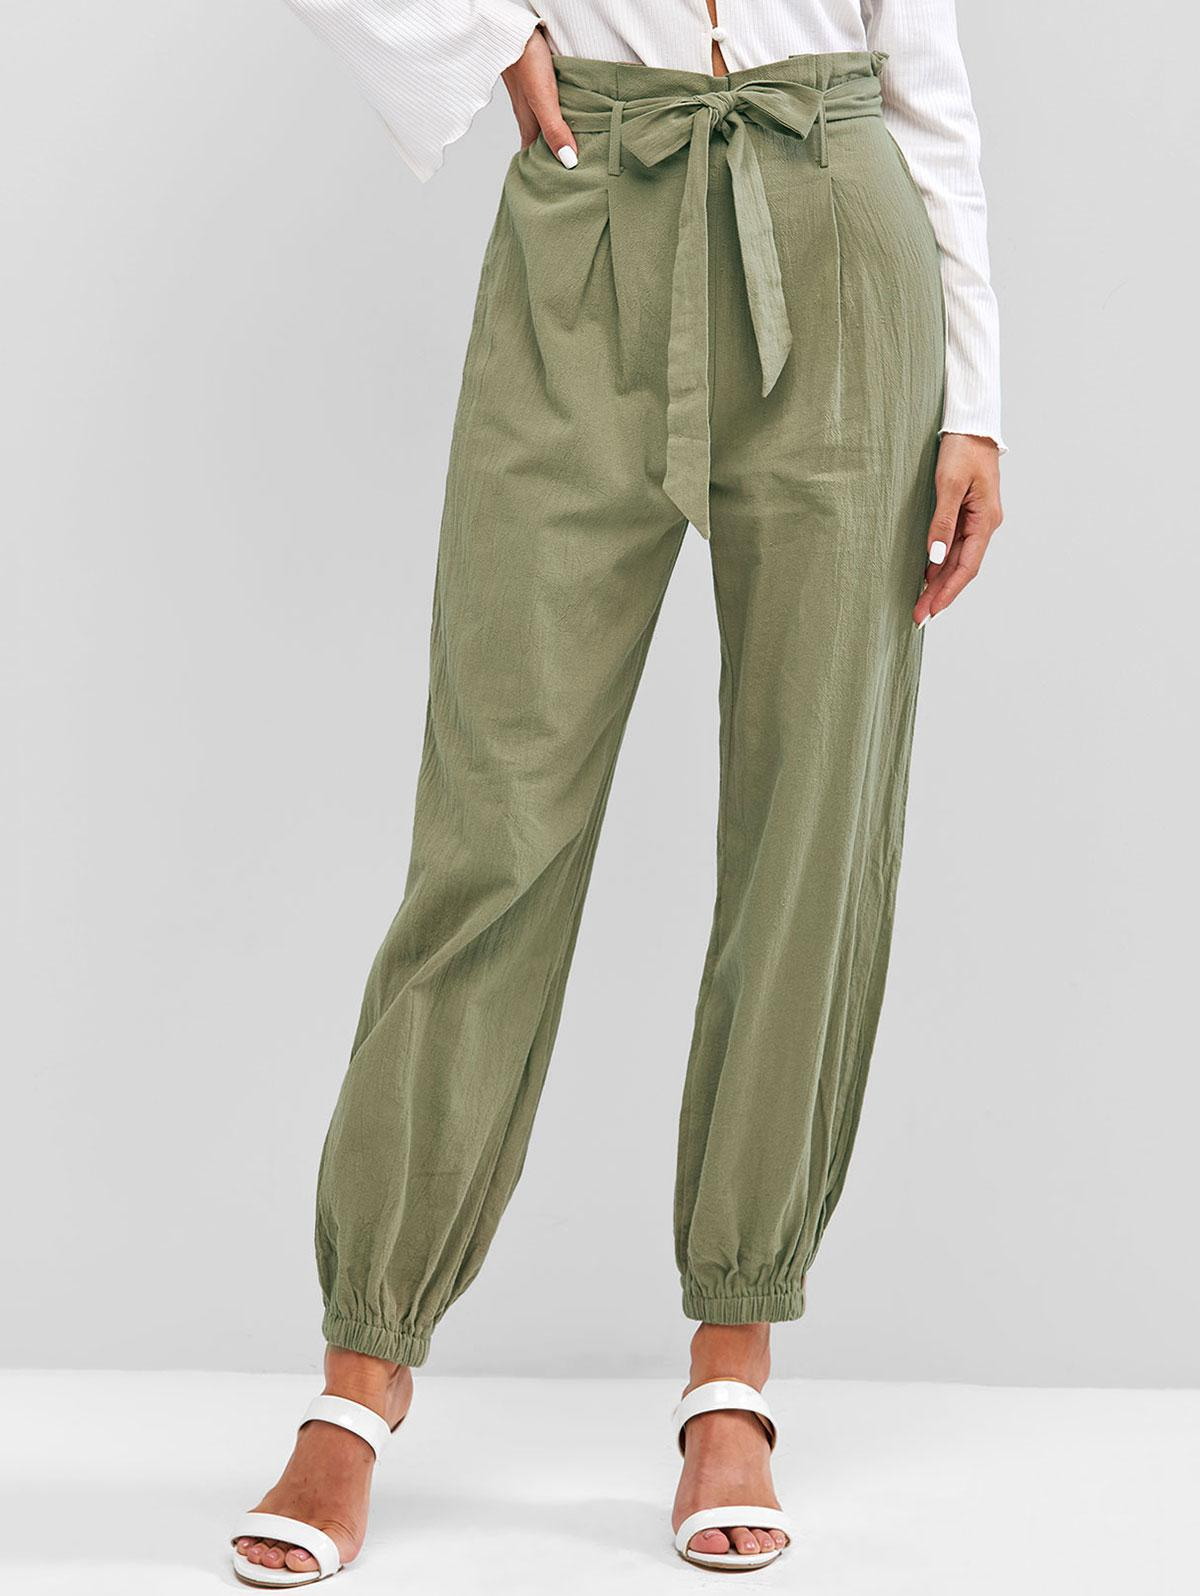 ZAFUL Solid Belted Paperbag Pants